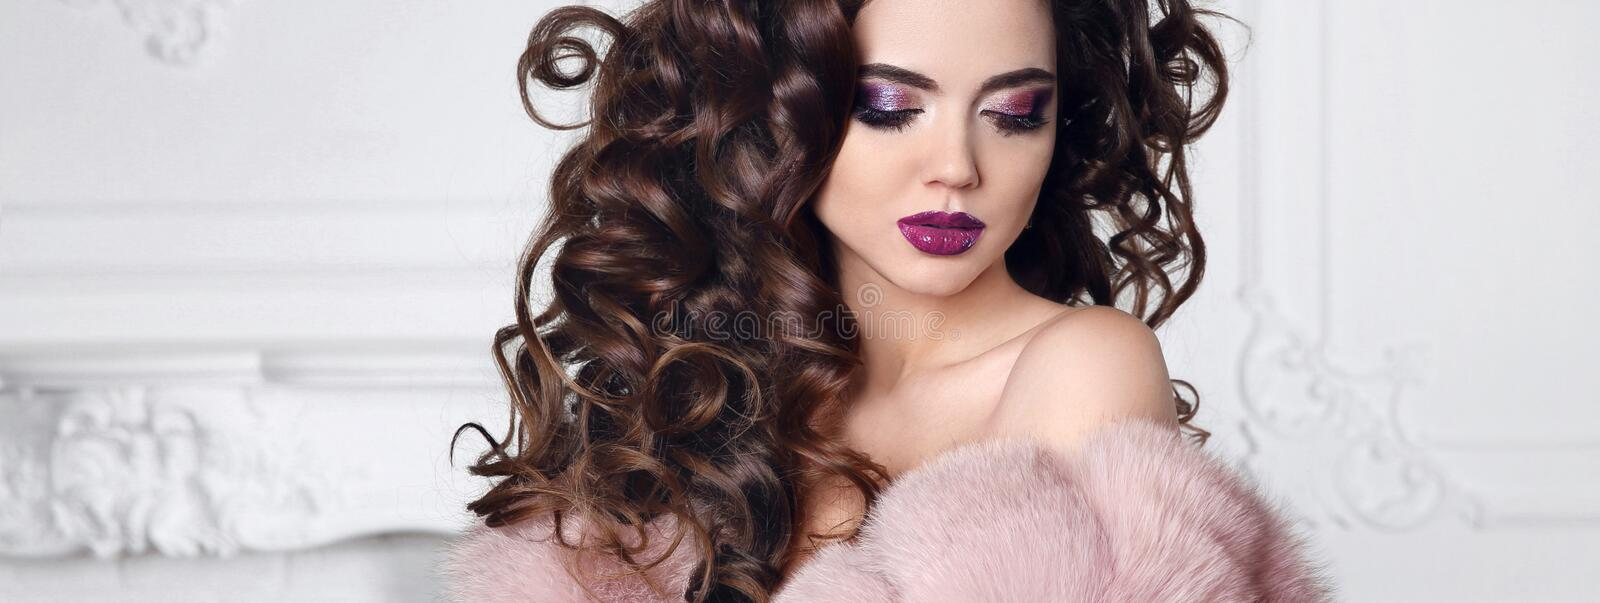 Glitter beauty makeup. Brunette with curly hair style wears in p. Ink fur coat. Glossy lipstick and purple eye shadow make-up royalty free stock image